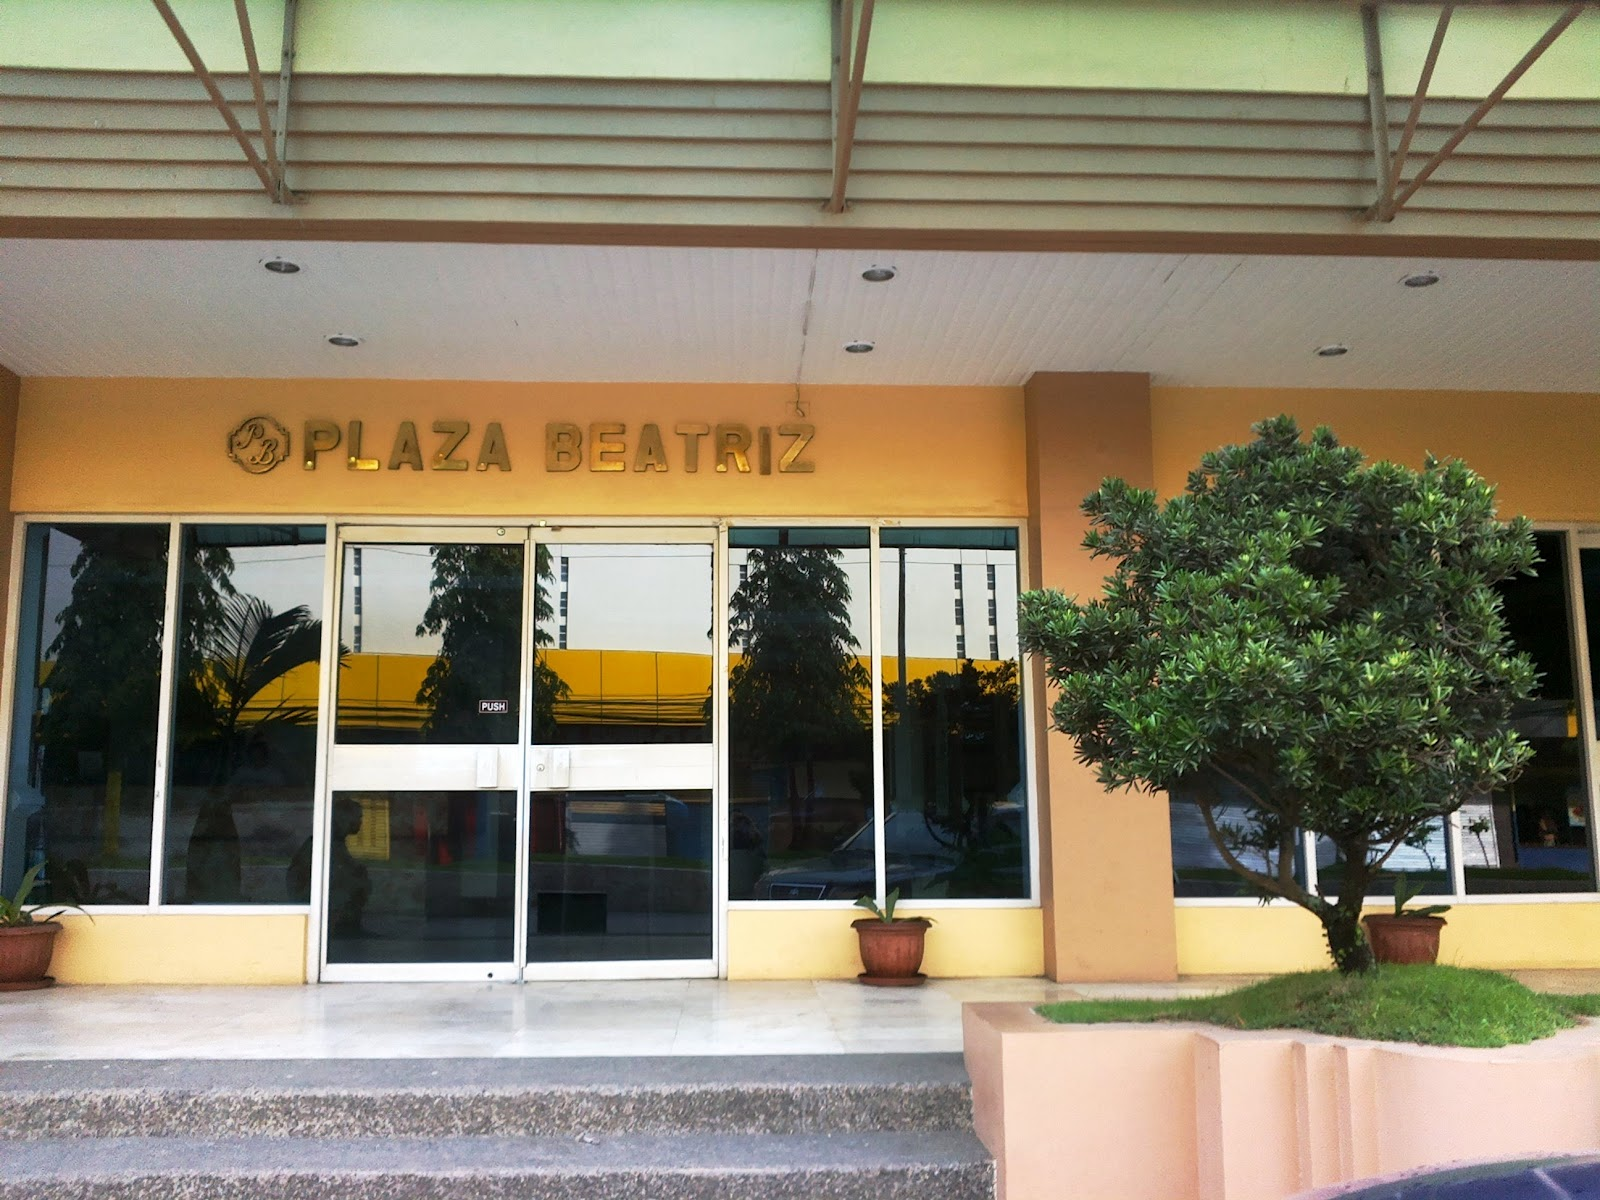 Offers Rates And Comfortable Safe Dwelling Place The Plaza Beatriz Hotel Along Downtown Area Just In Front Of Gaisano Mall Ozamis